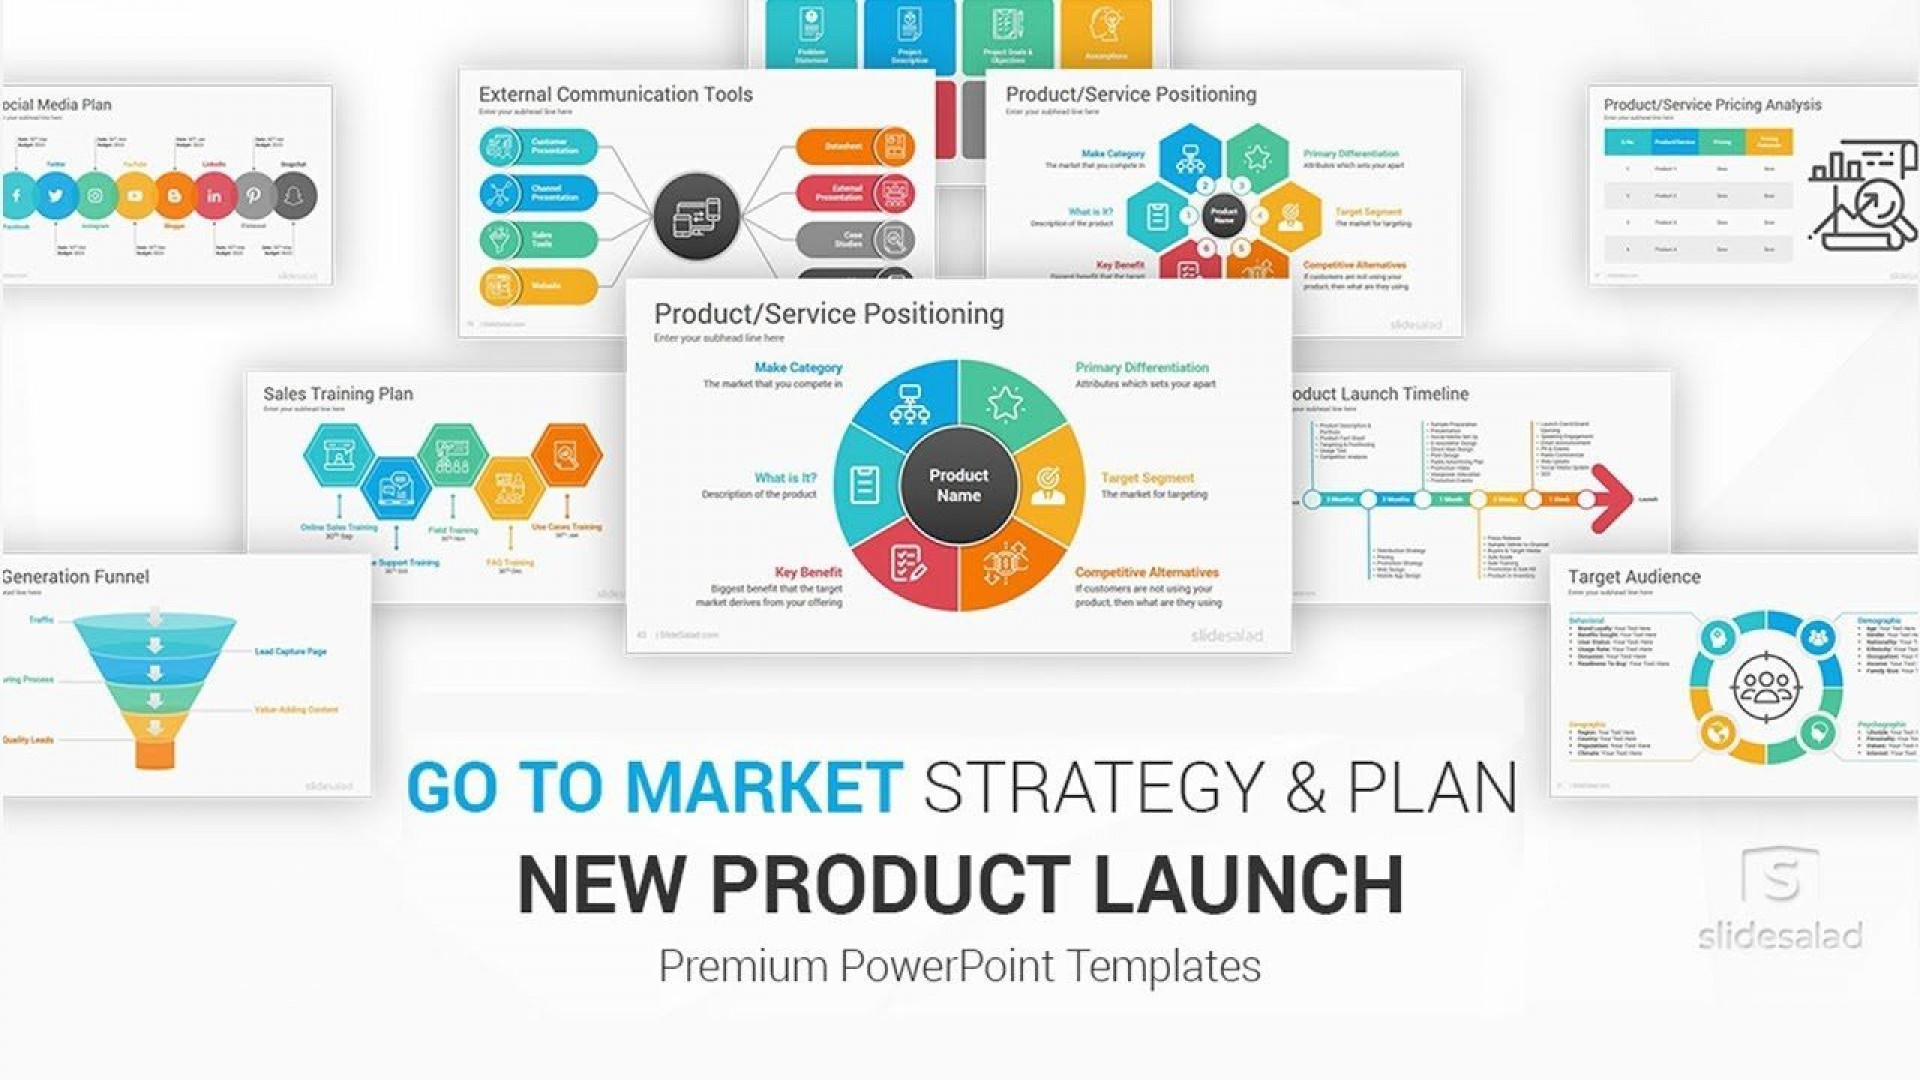 005 Formidable Product Launch Plan Template Design  Google Sheet Ppt Free Powerpoint1920